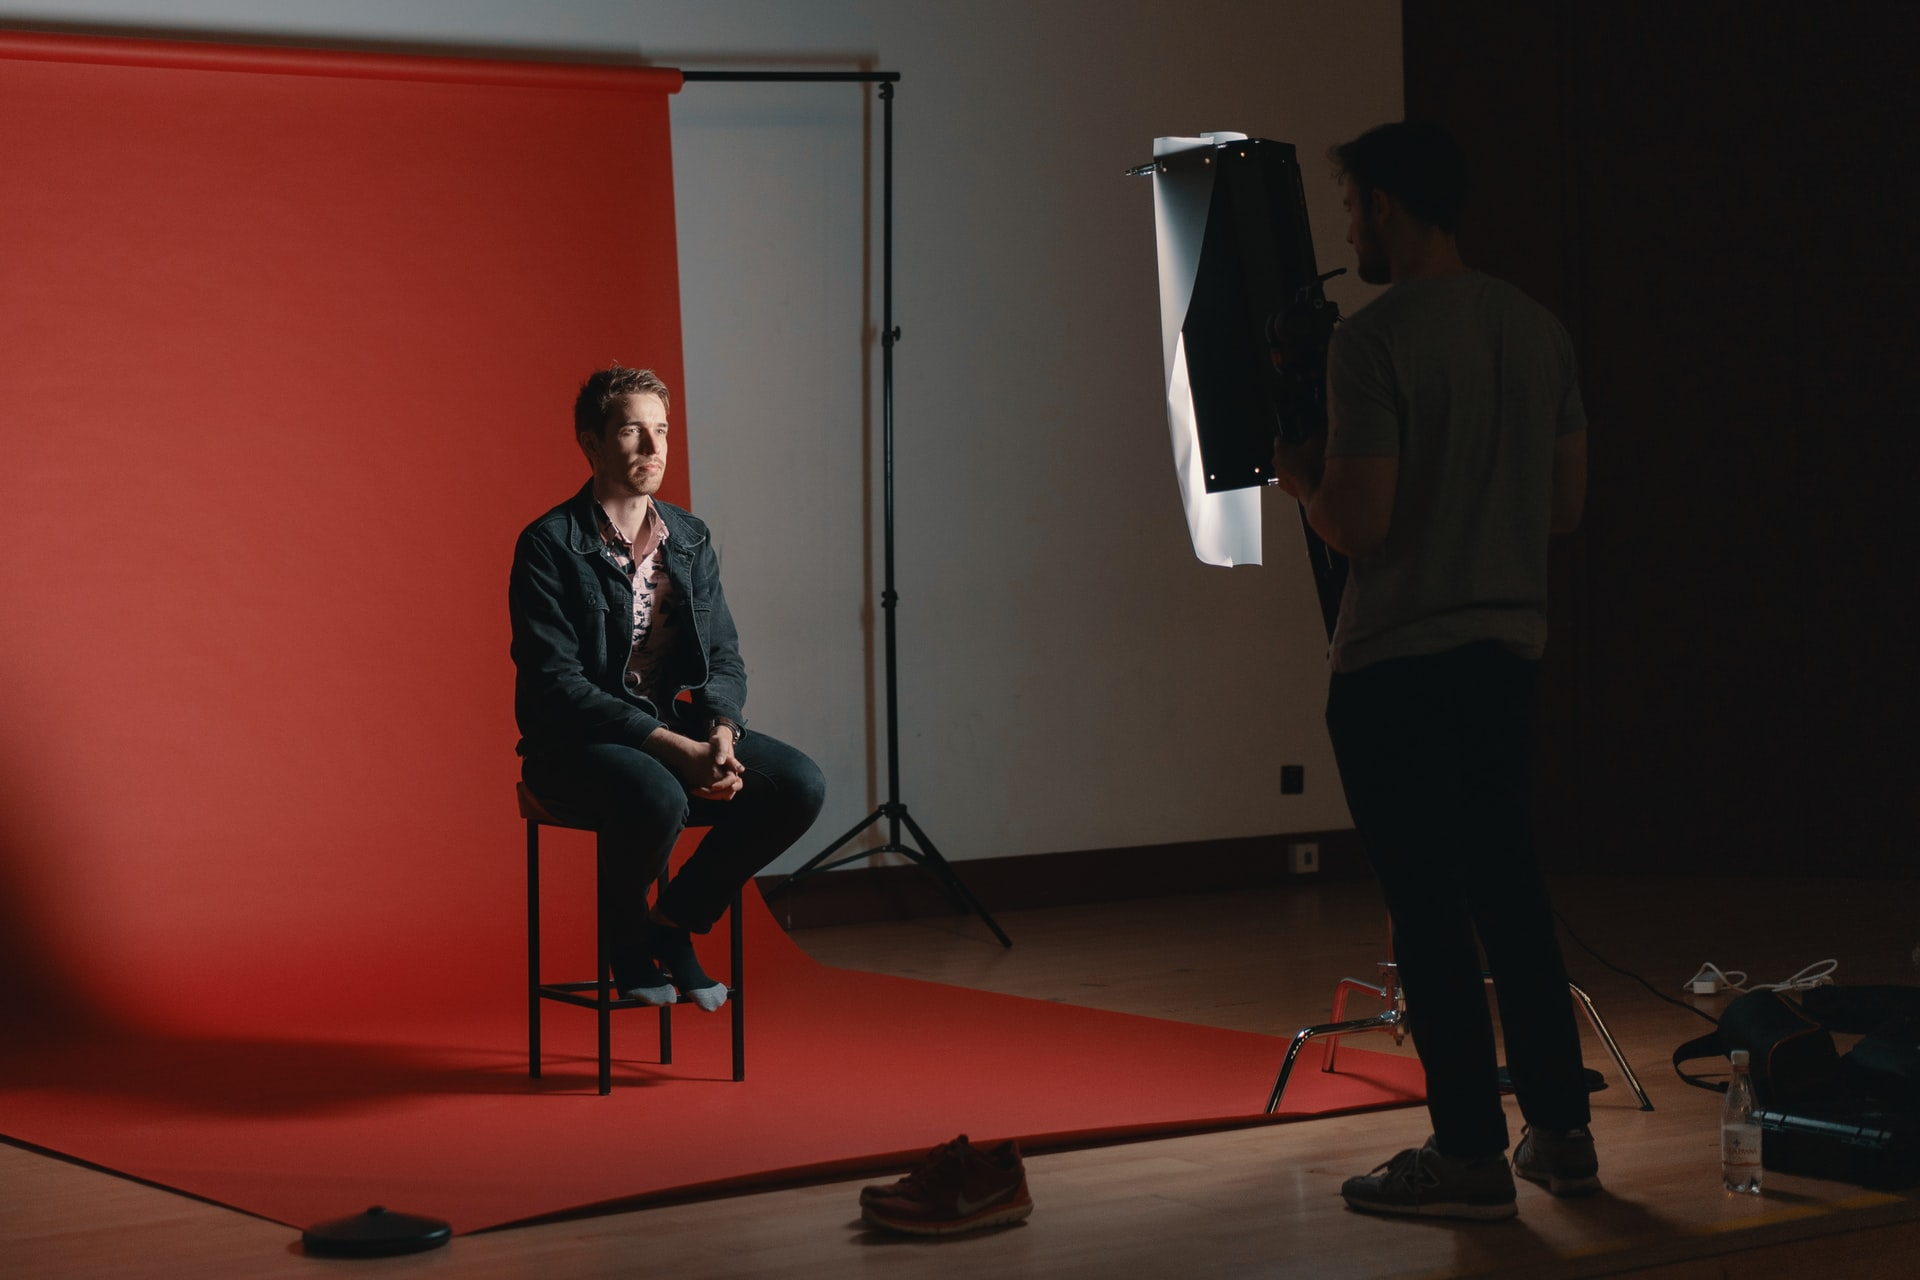 leverage business headshots; a person getting their headshot taken in a studio, against a red background